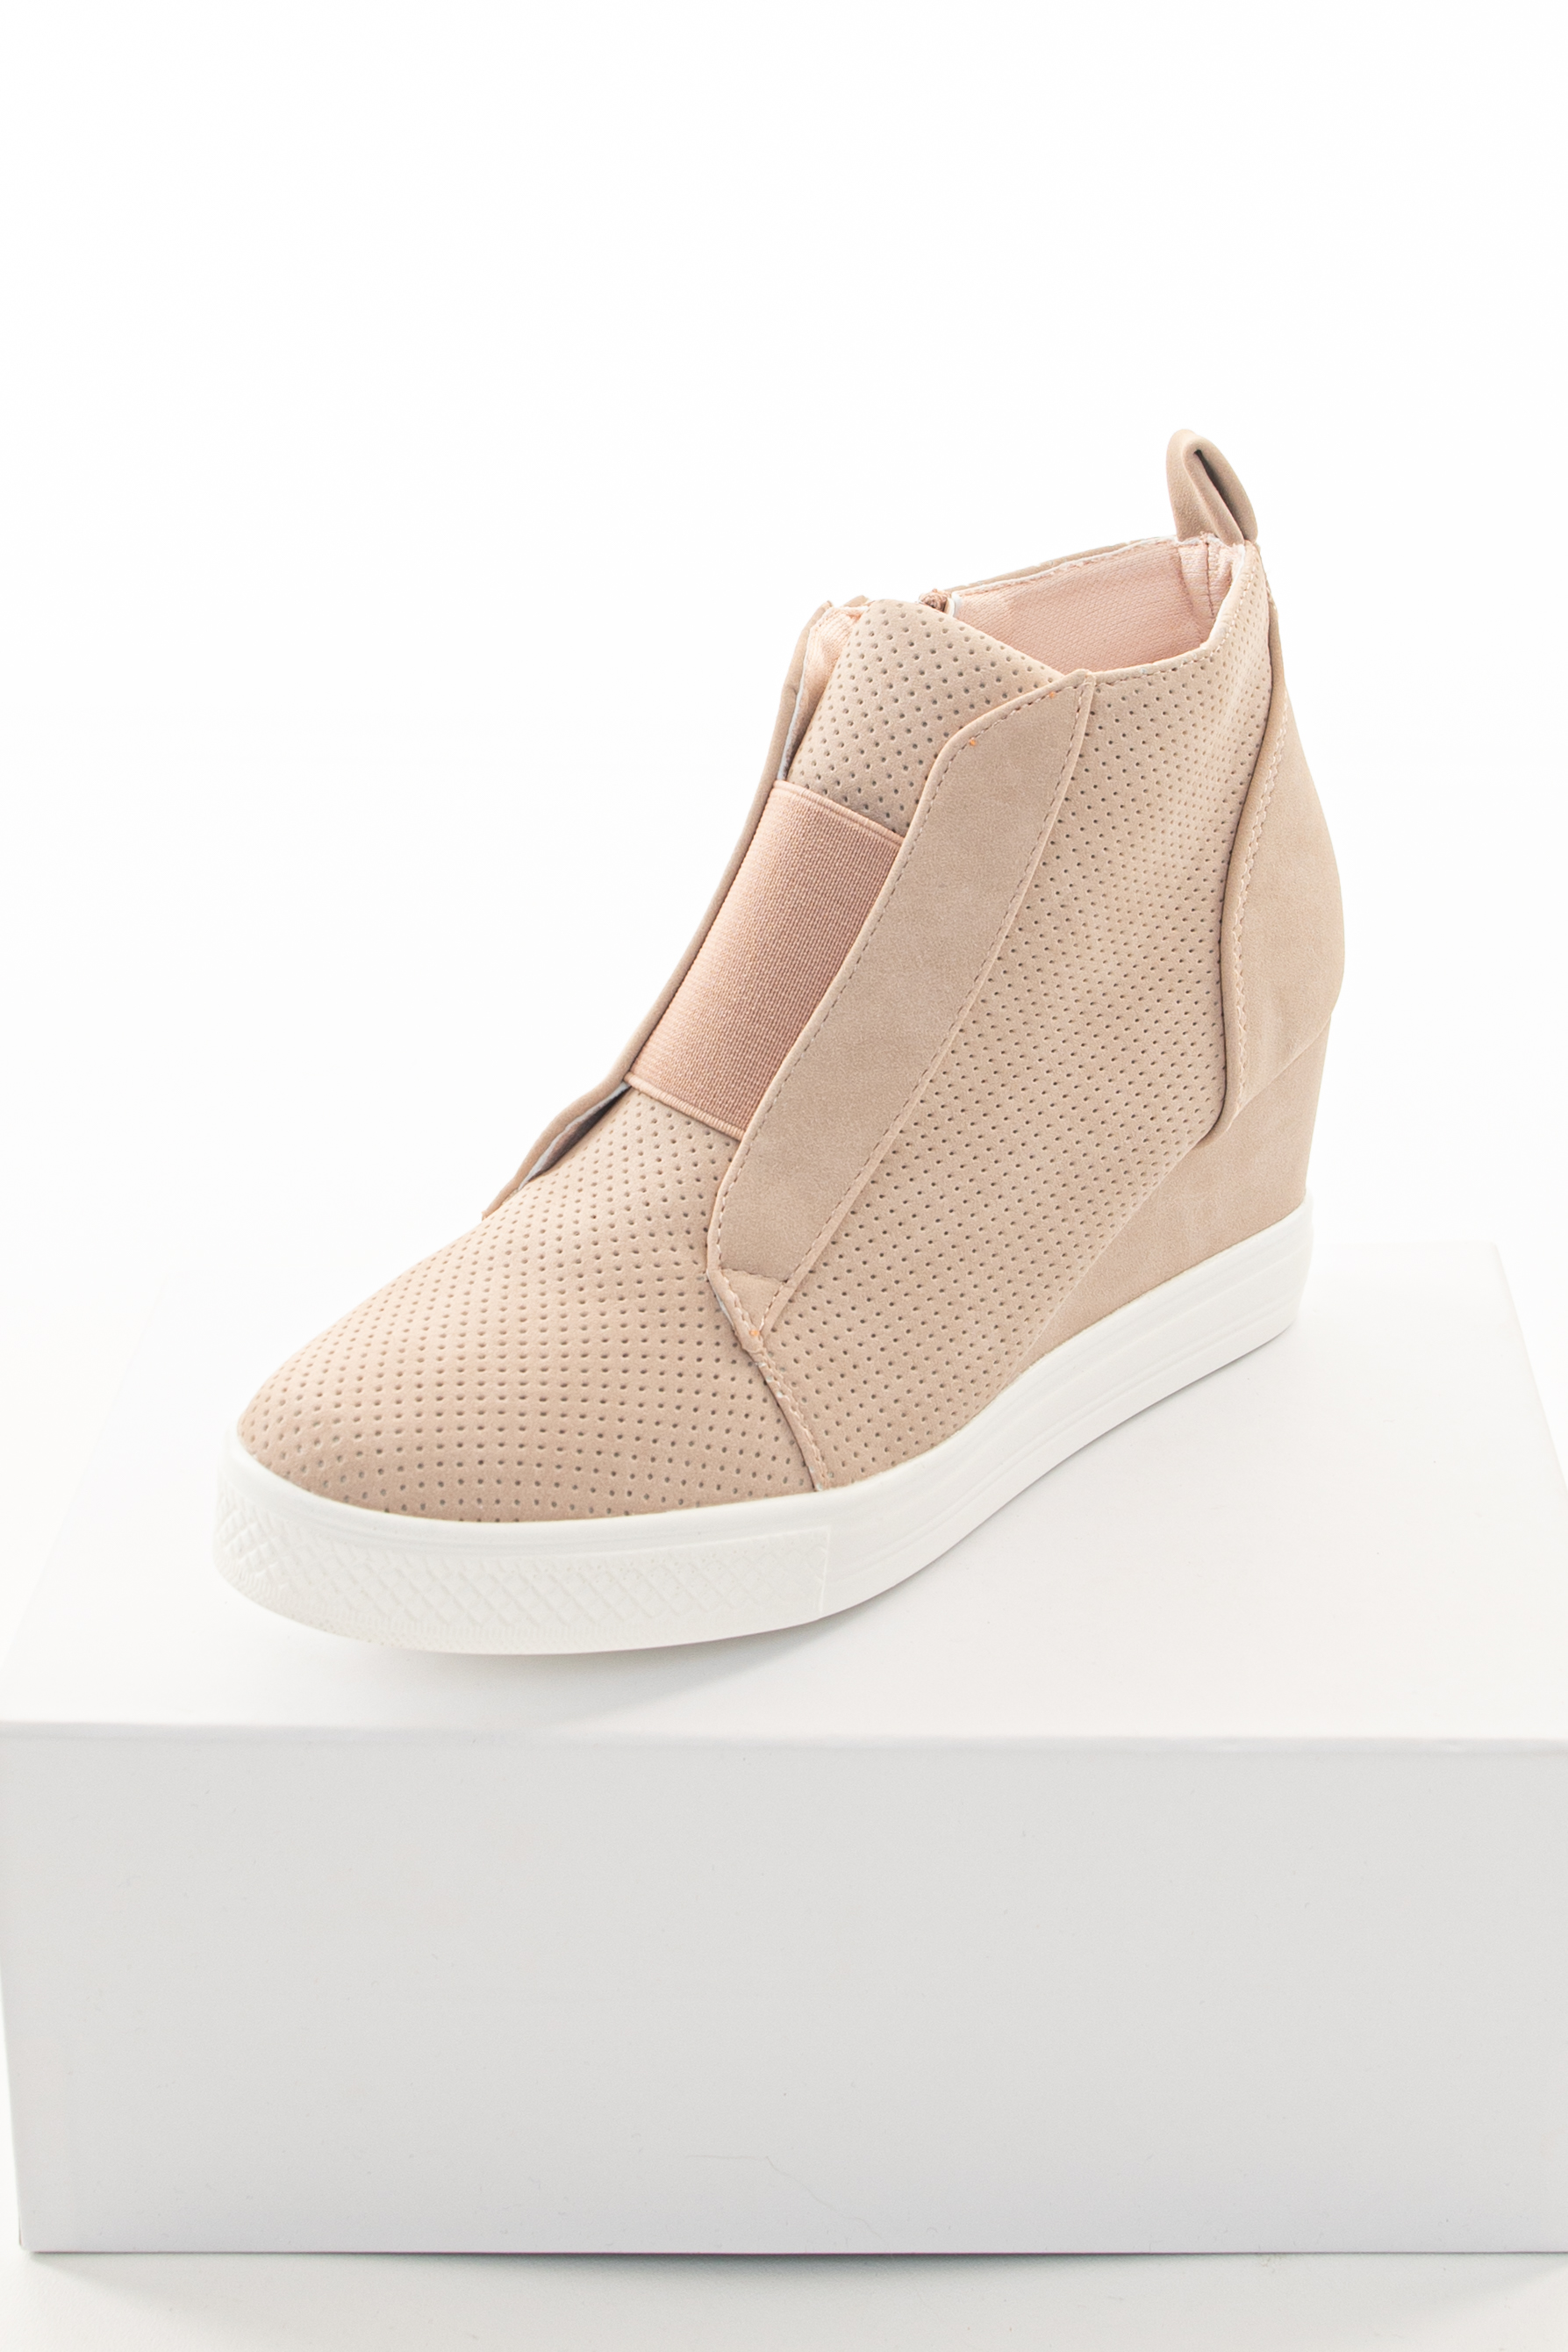 Blush Faux Suede Wedge Sneaker with